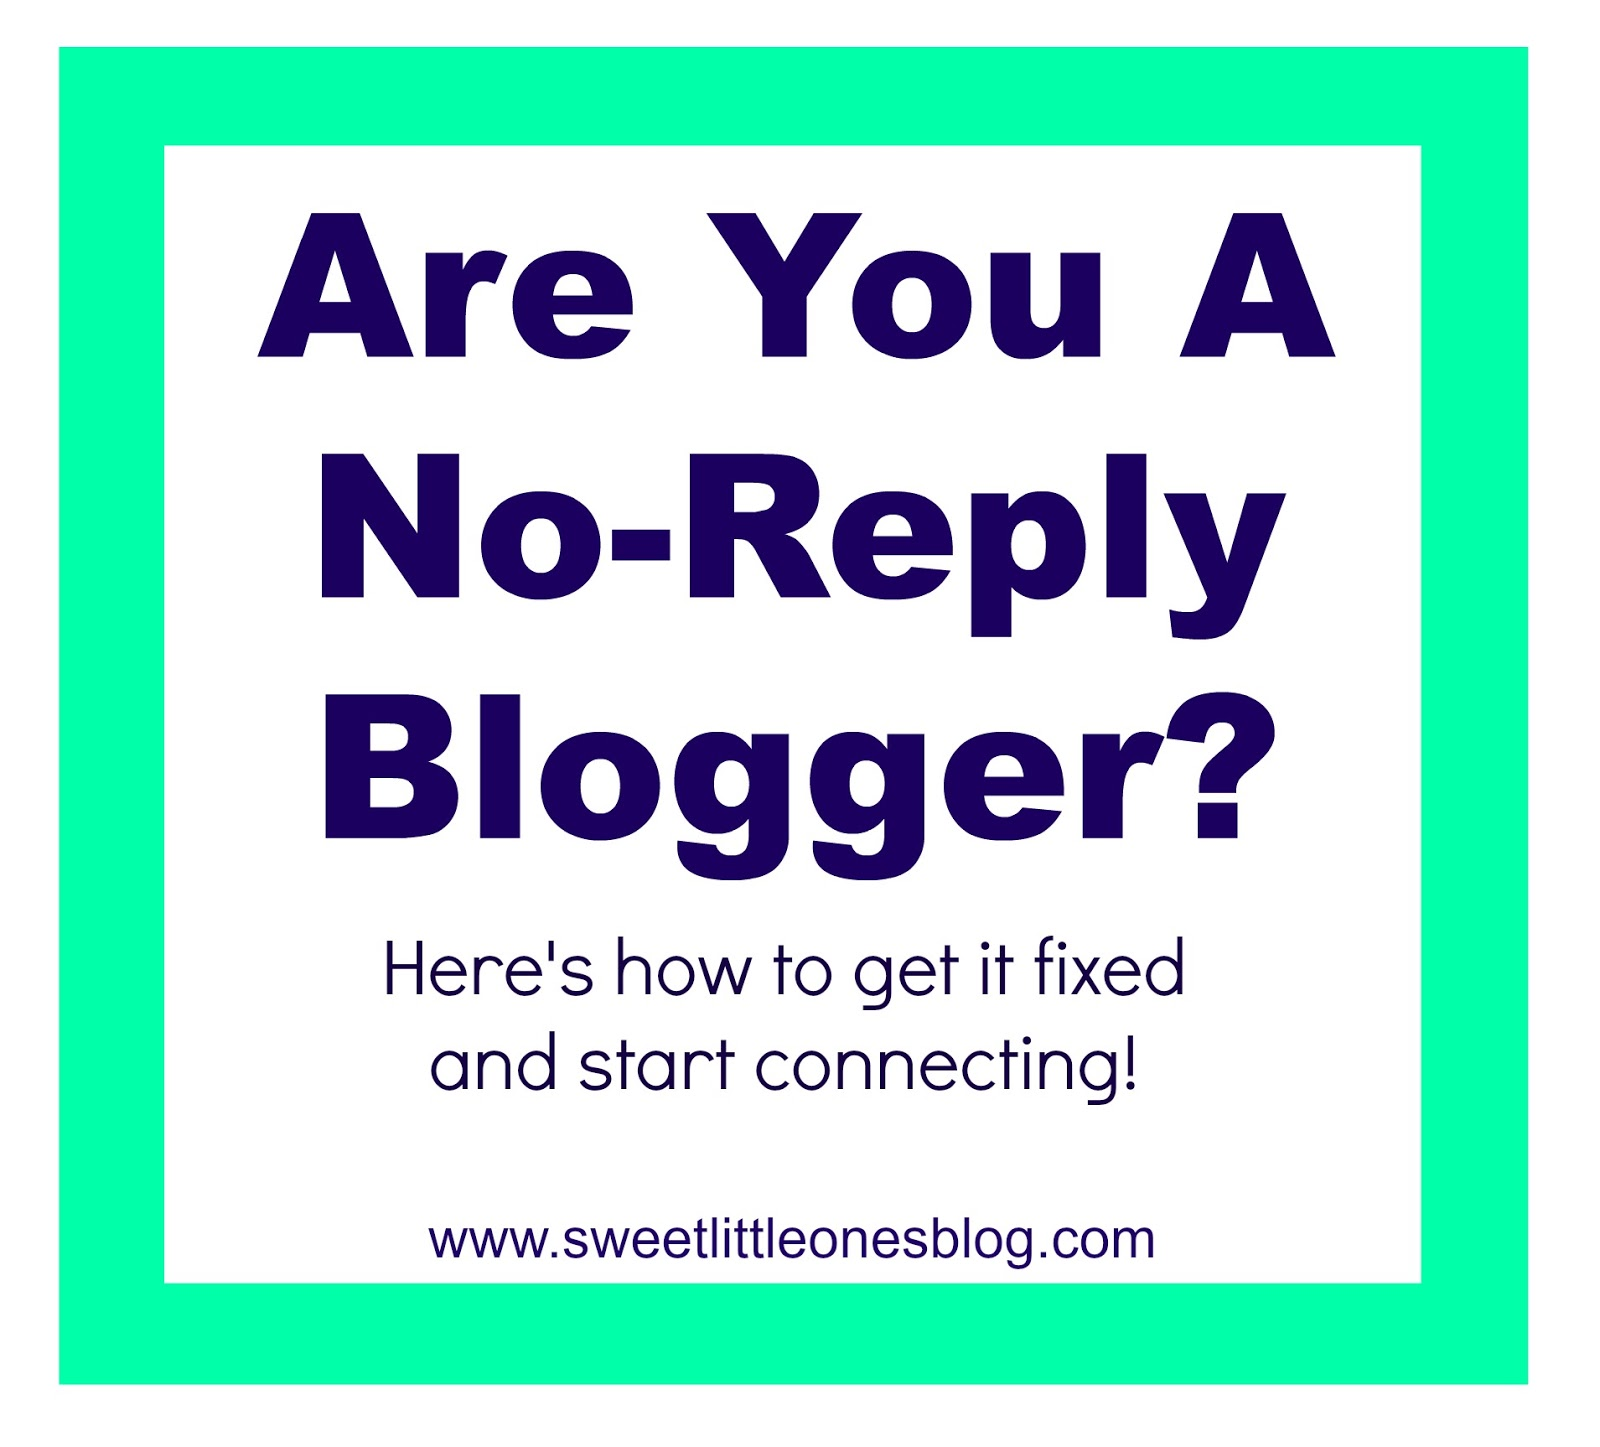 How to Fix No Reply Comment Blogger - www.sweetlittleonesblog.com